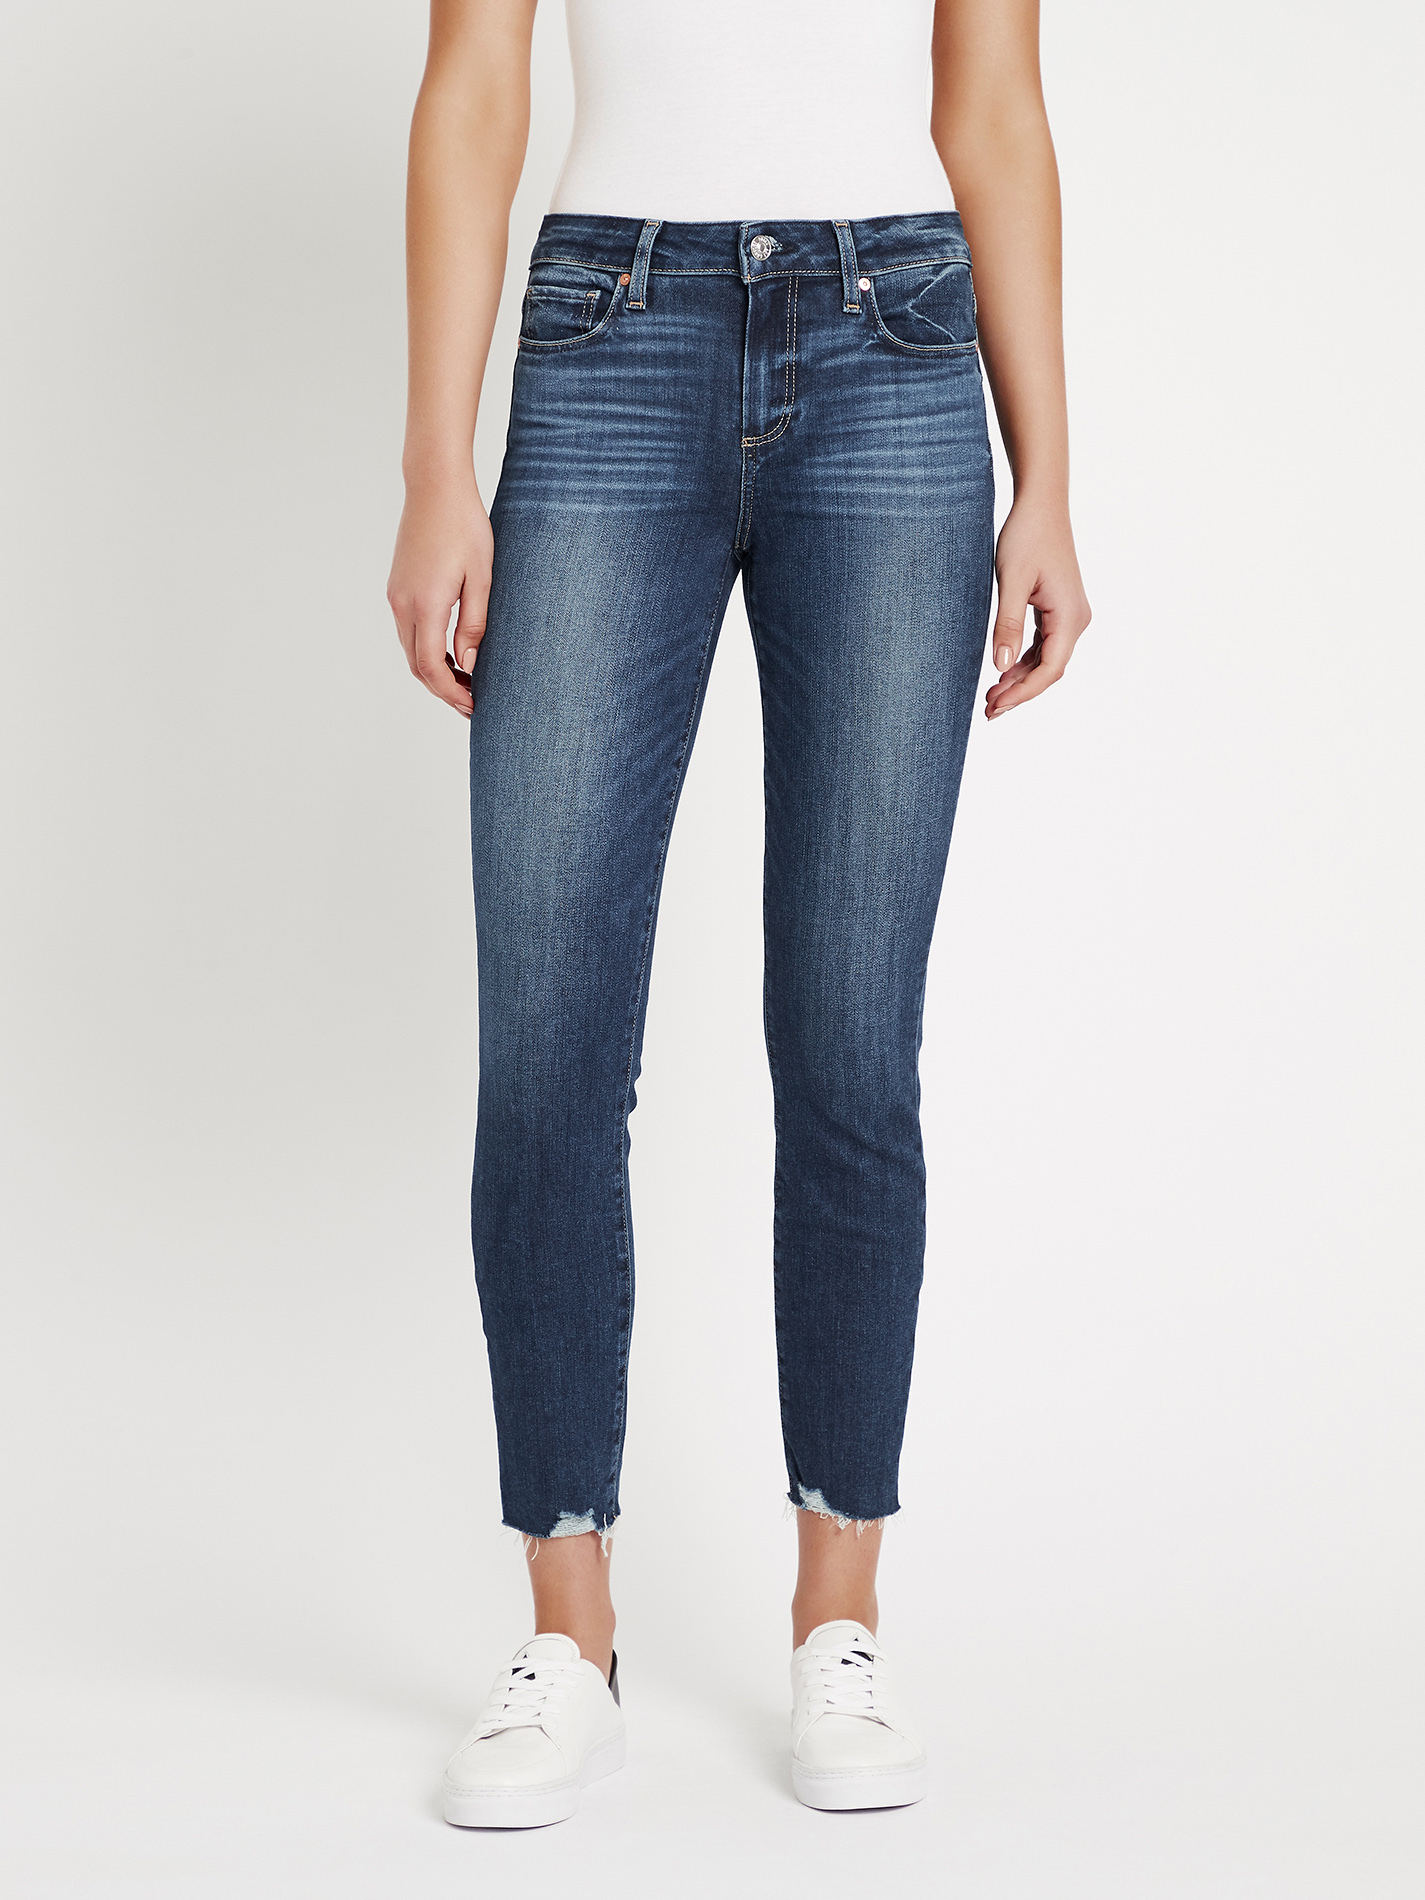 PAIGE Womens Verdugo Ankle Jeans